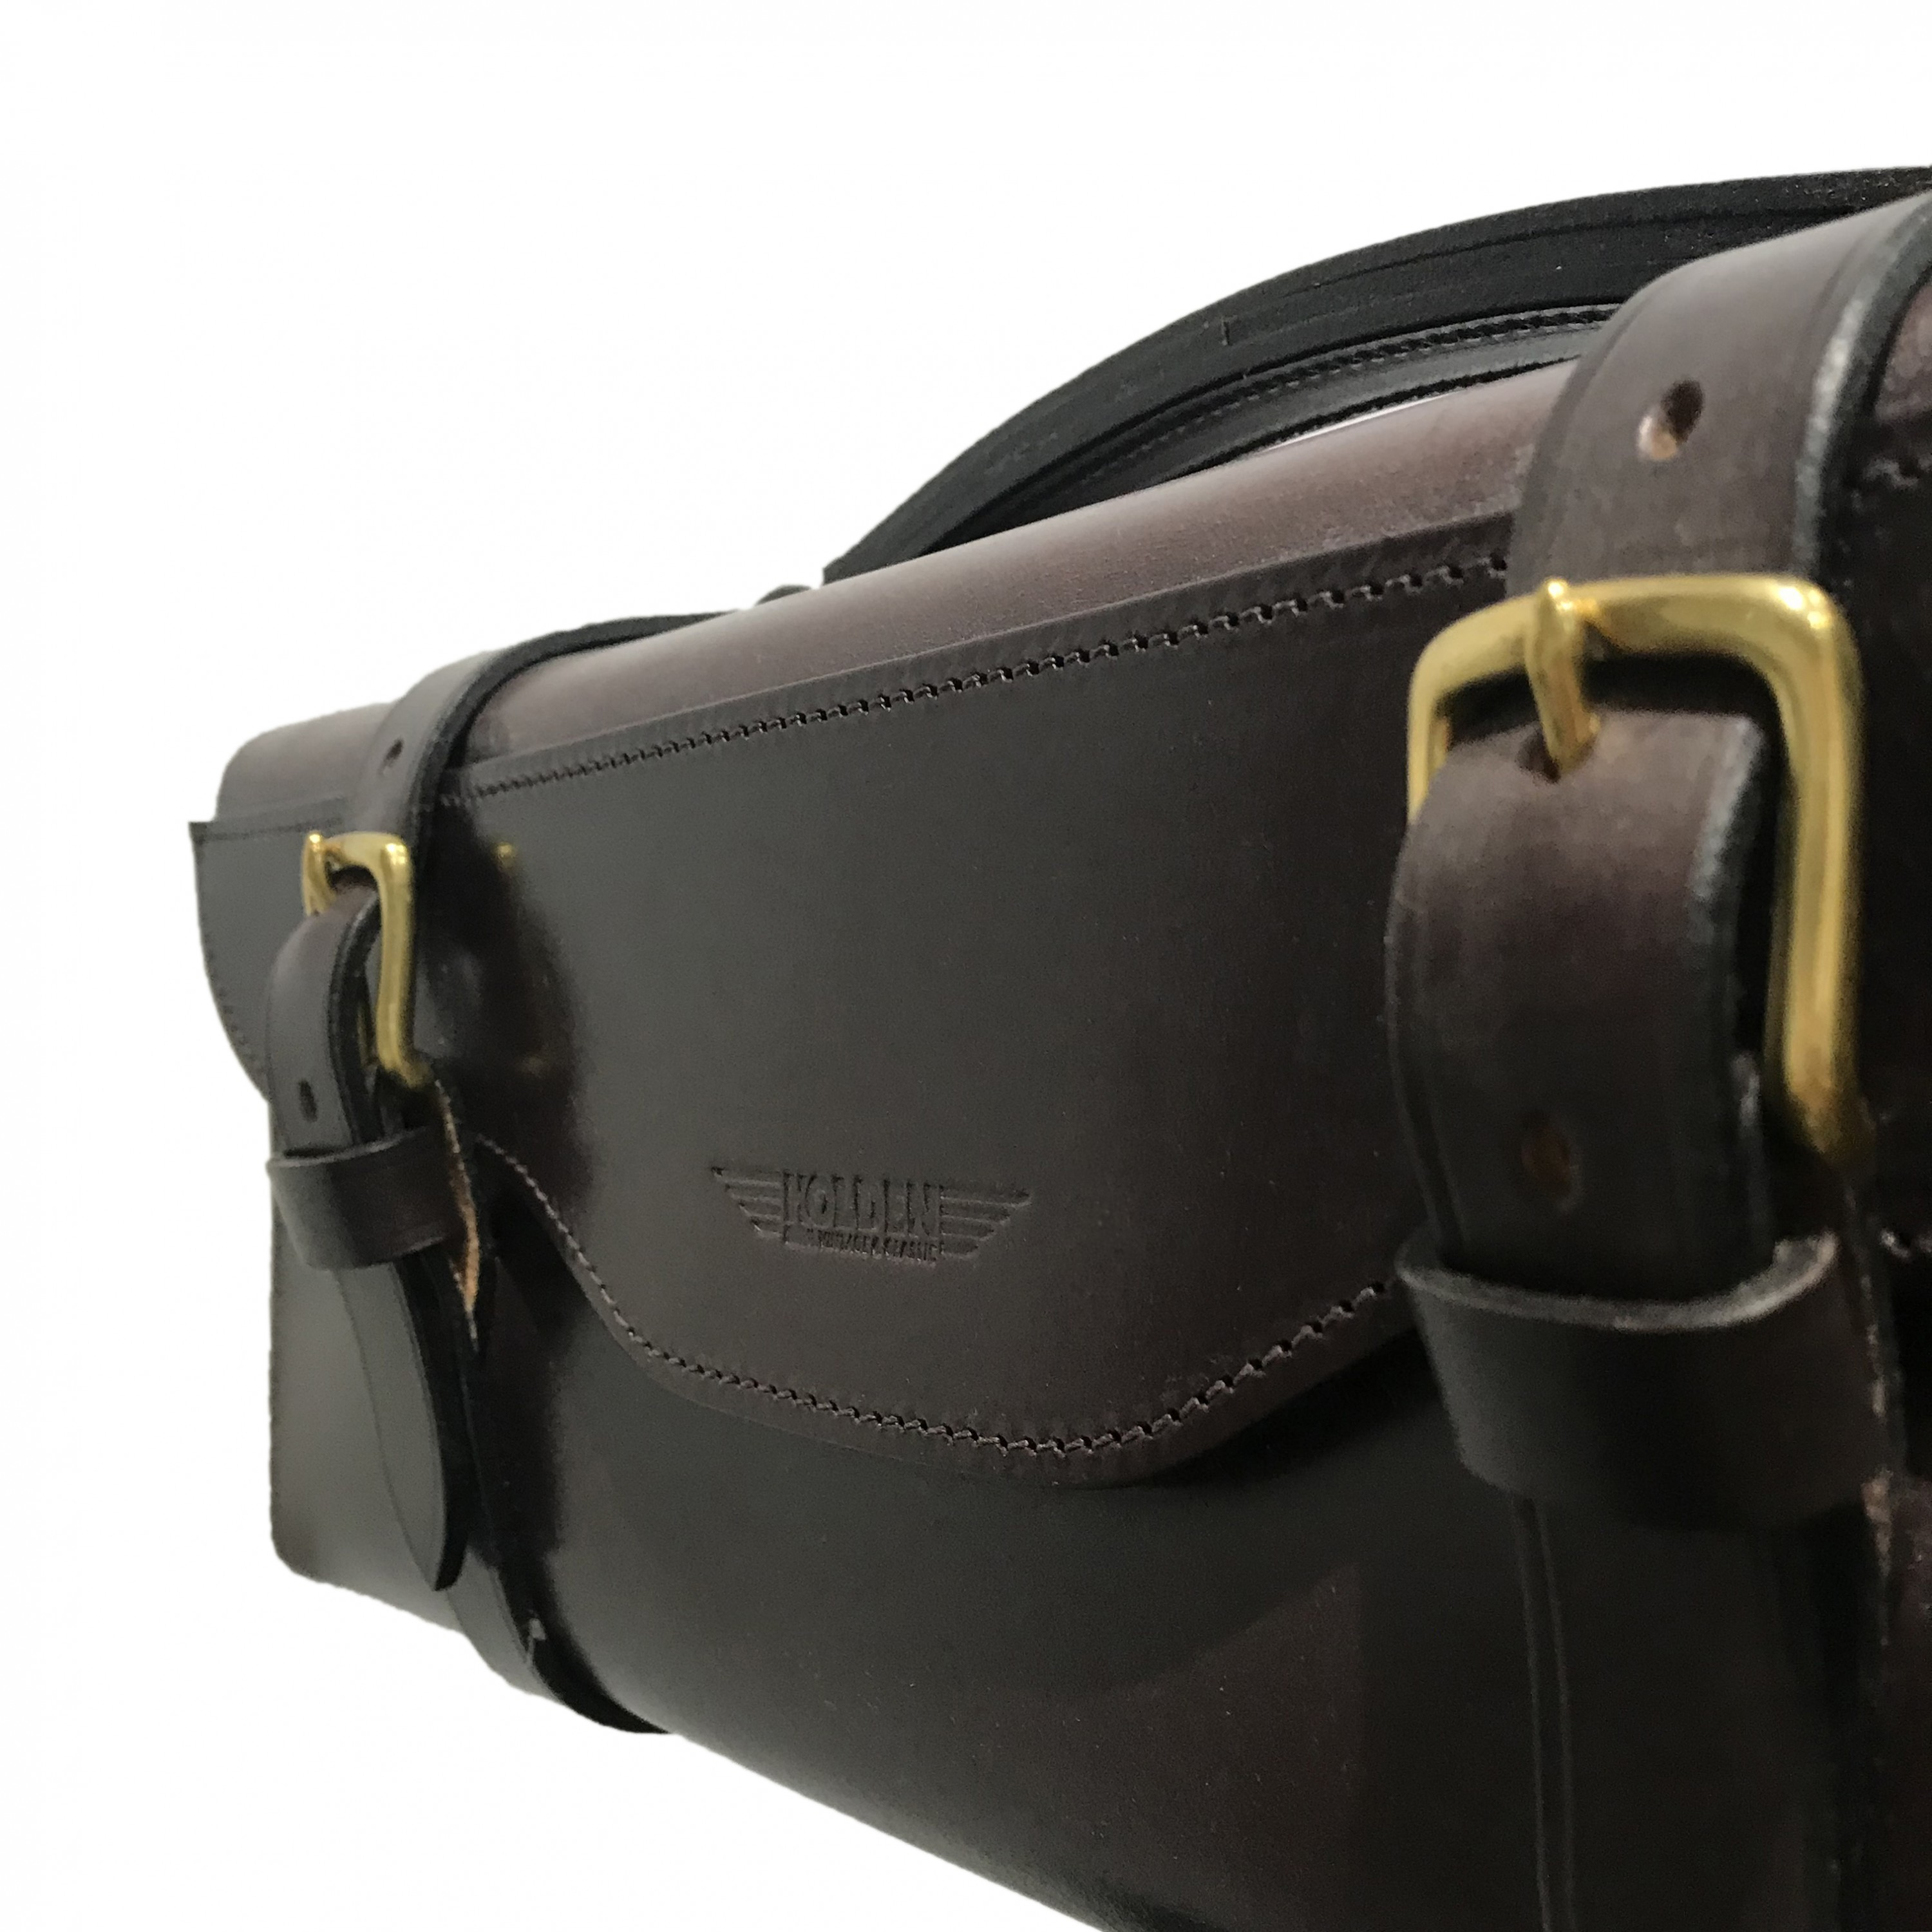 Leather Toolbag - DeLuxe image #1